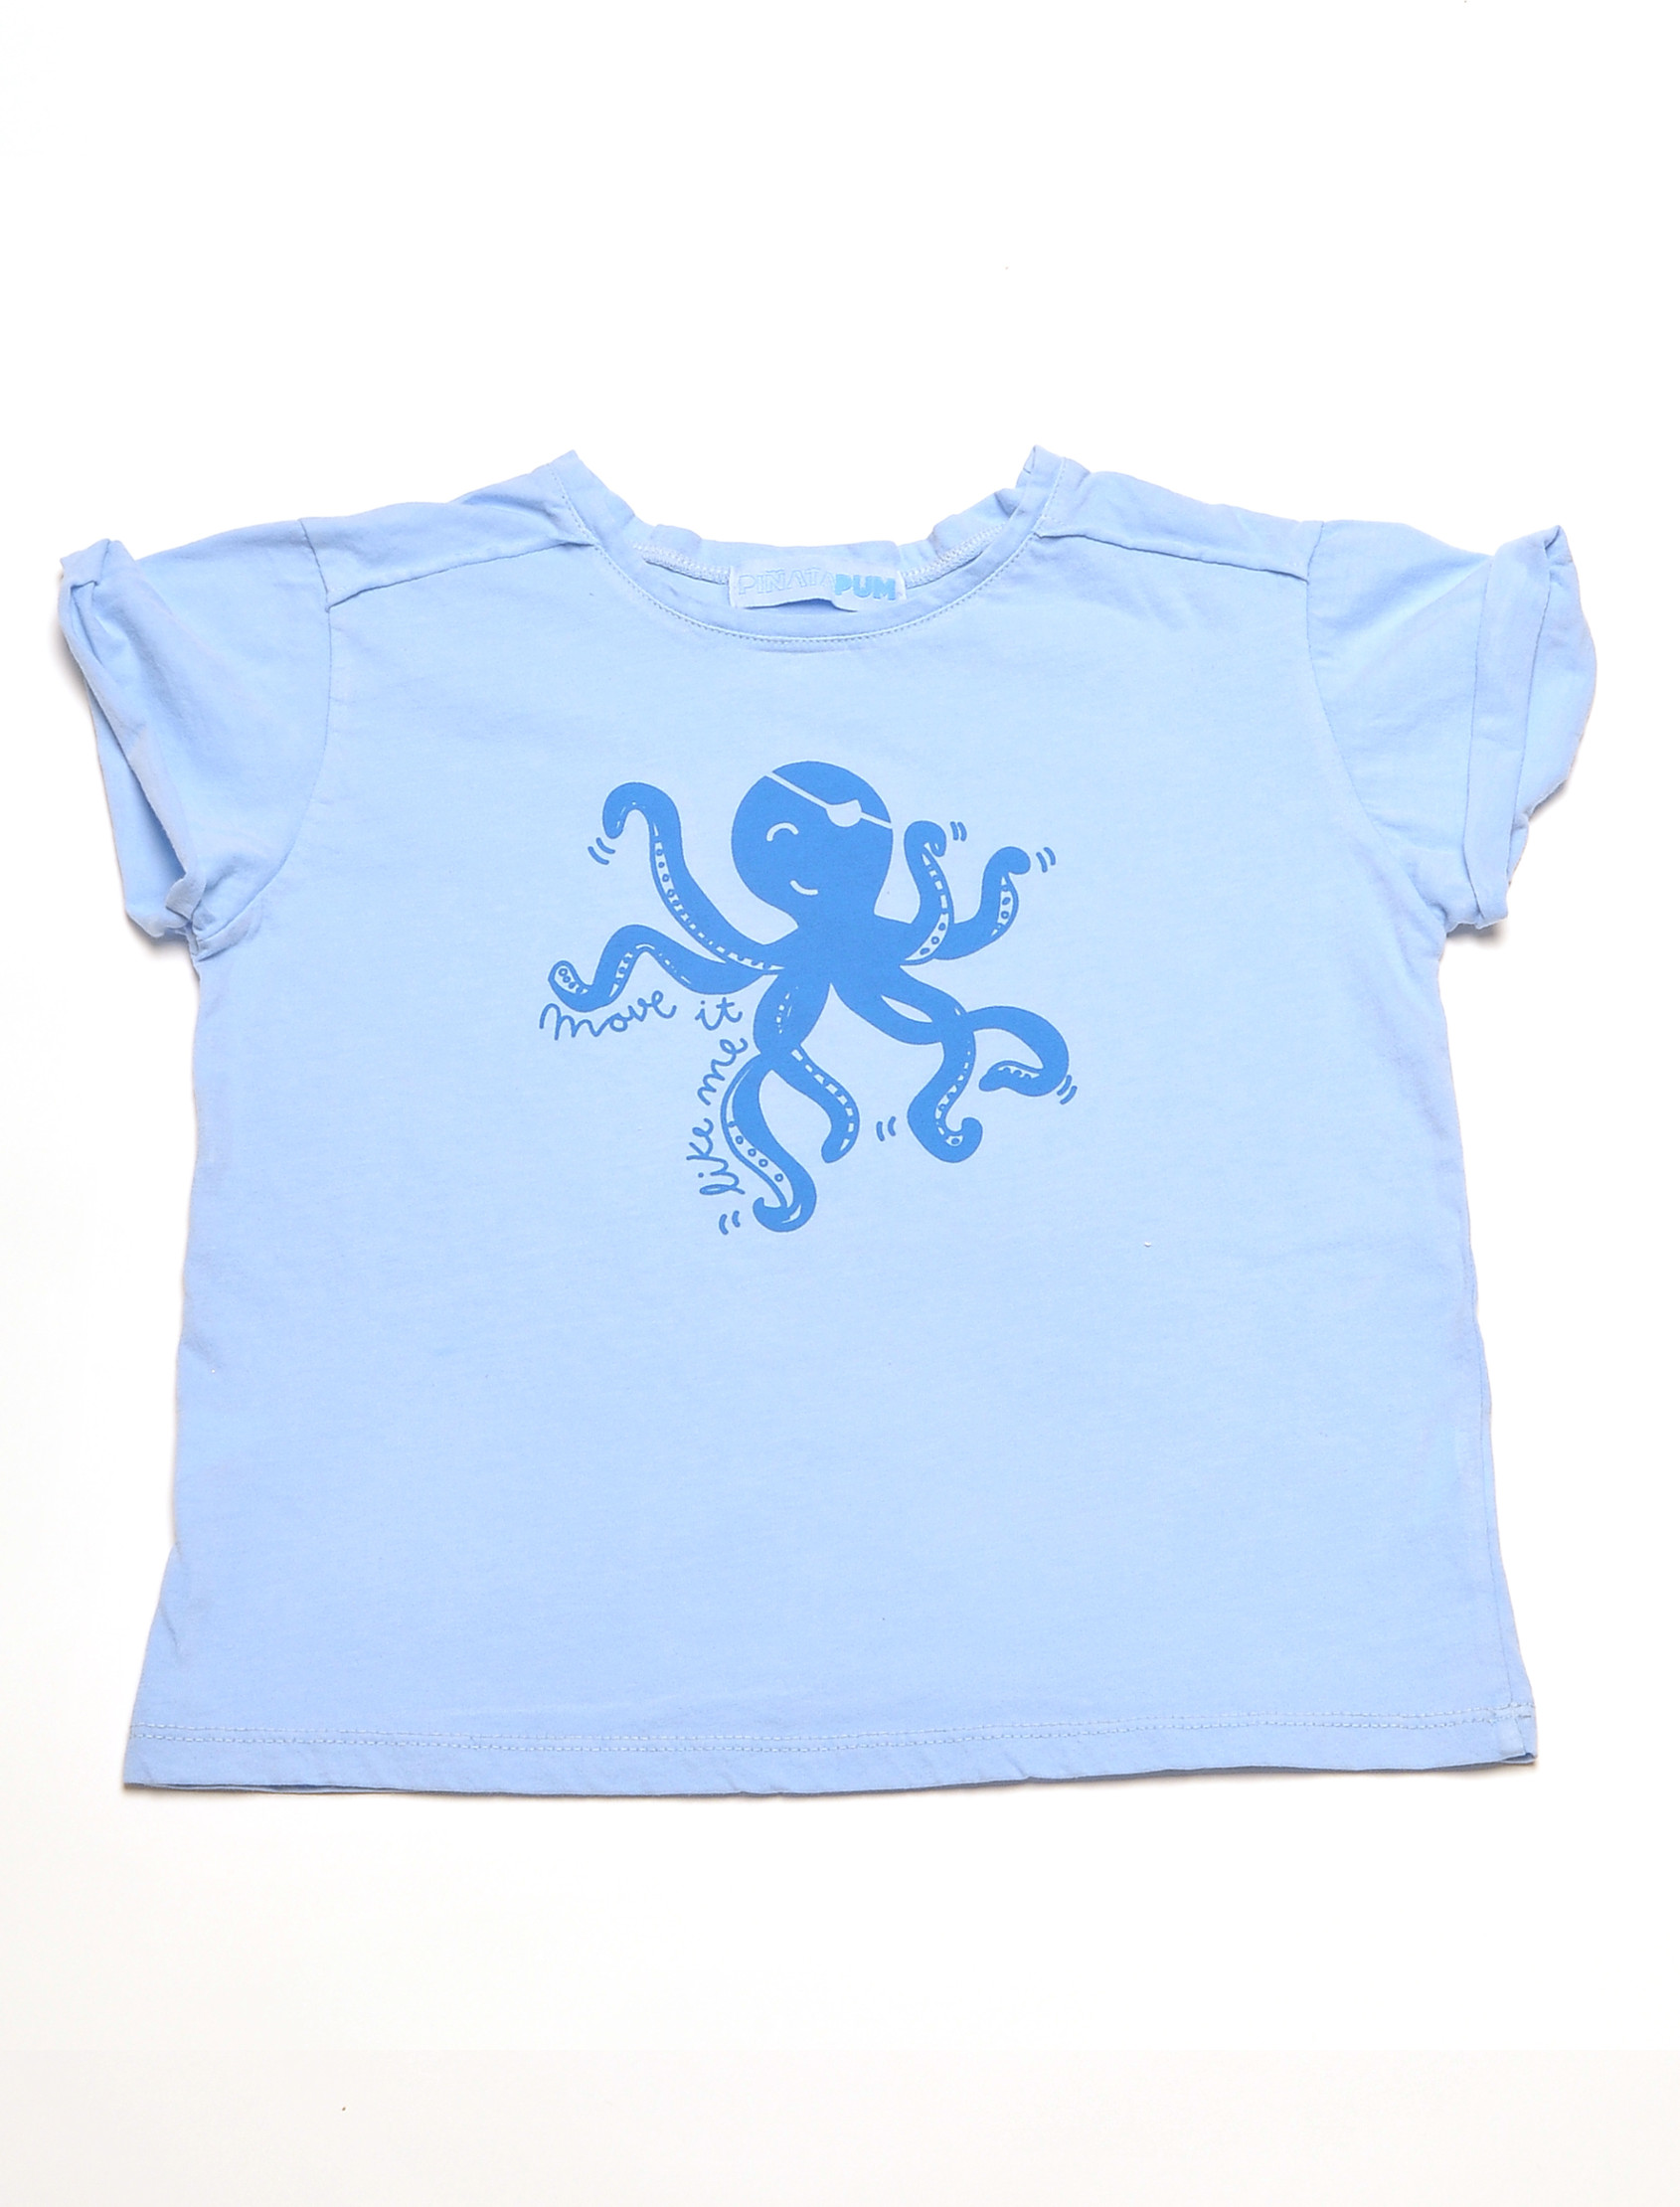 Camisetaballenatorblue_01